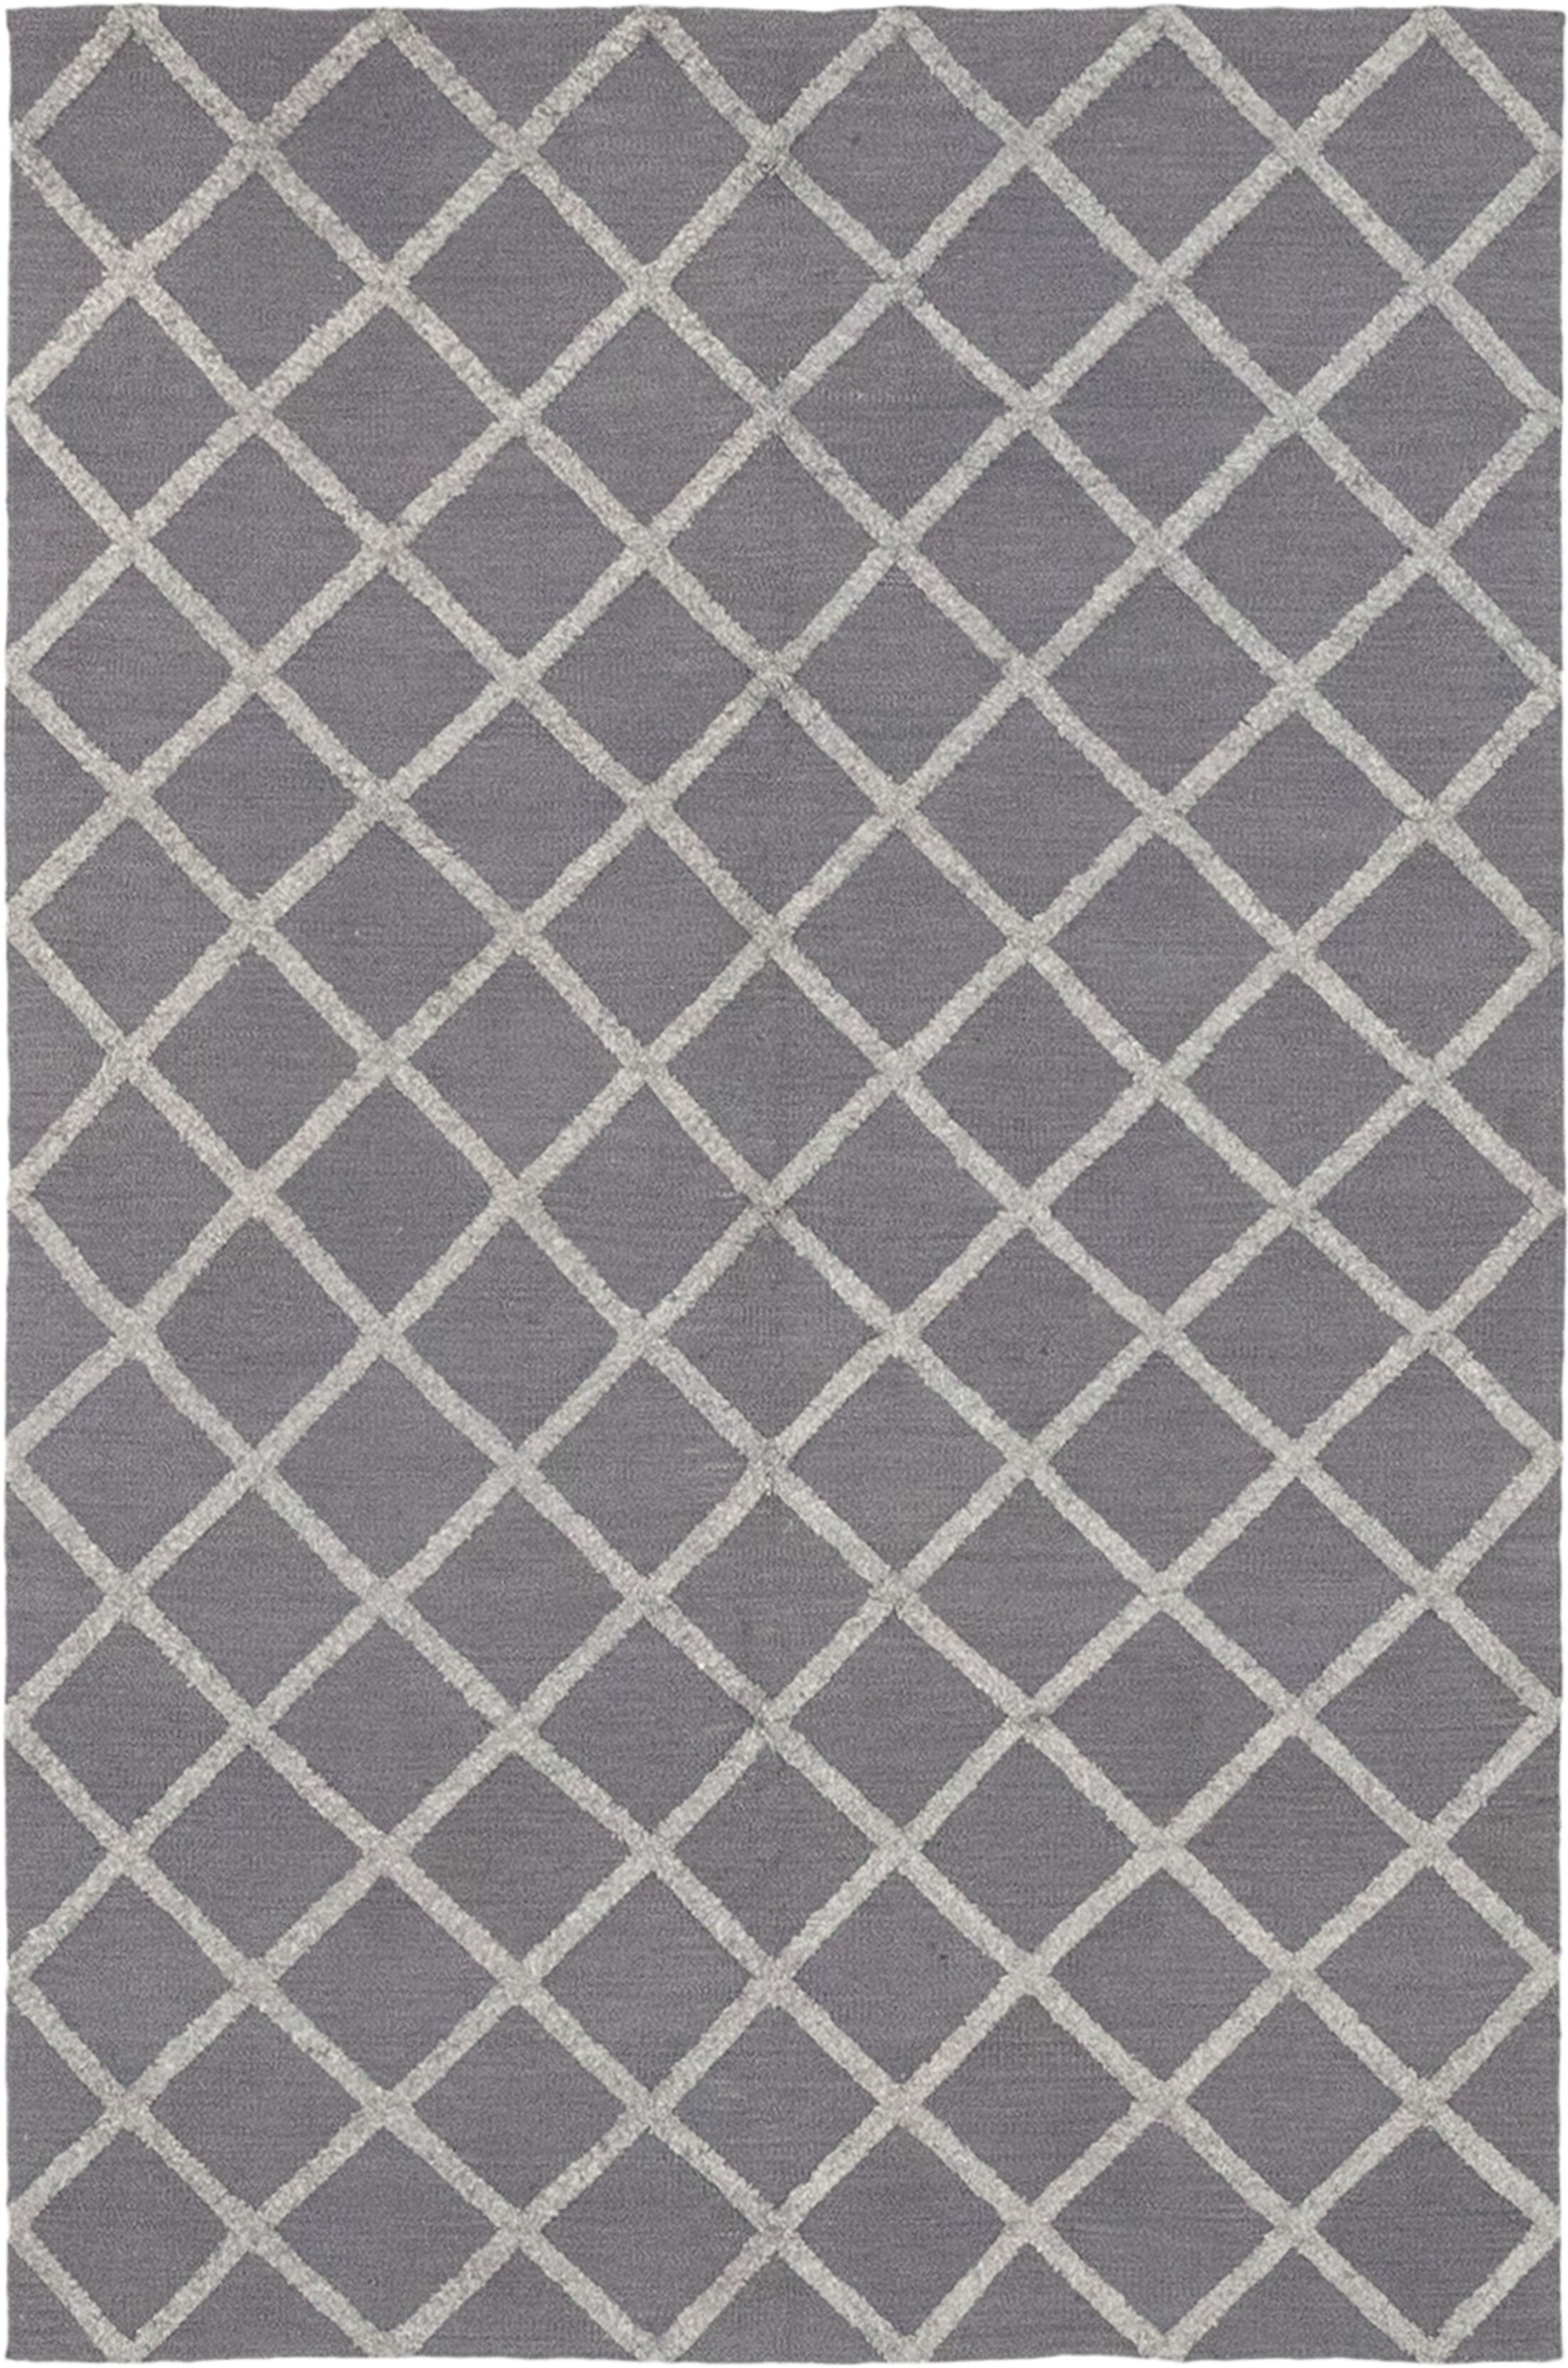 One-of-a-Kind Embree Hand-Knotted Wool Gray Indoor Area Rug